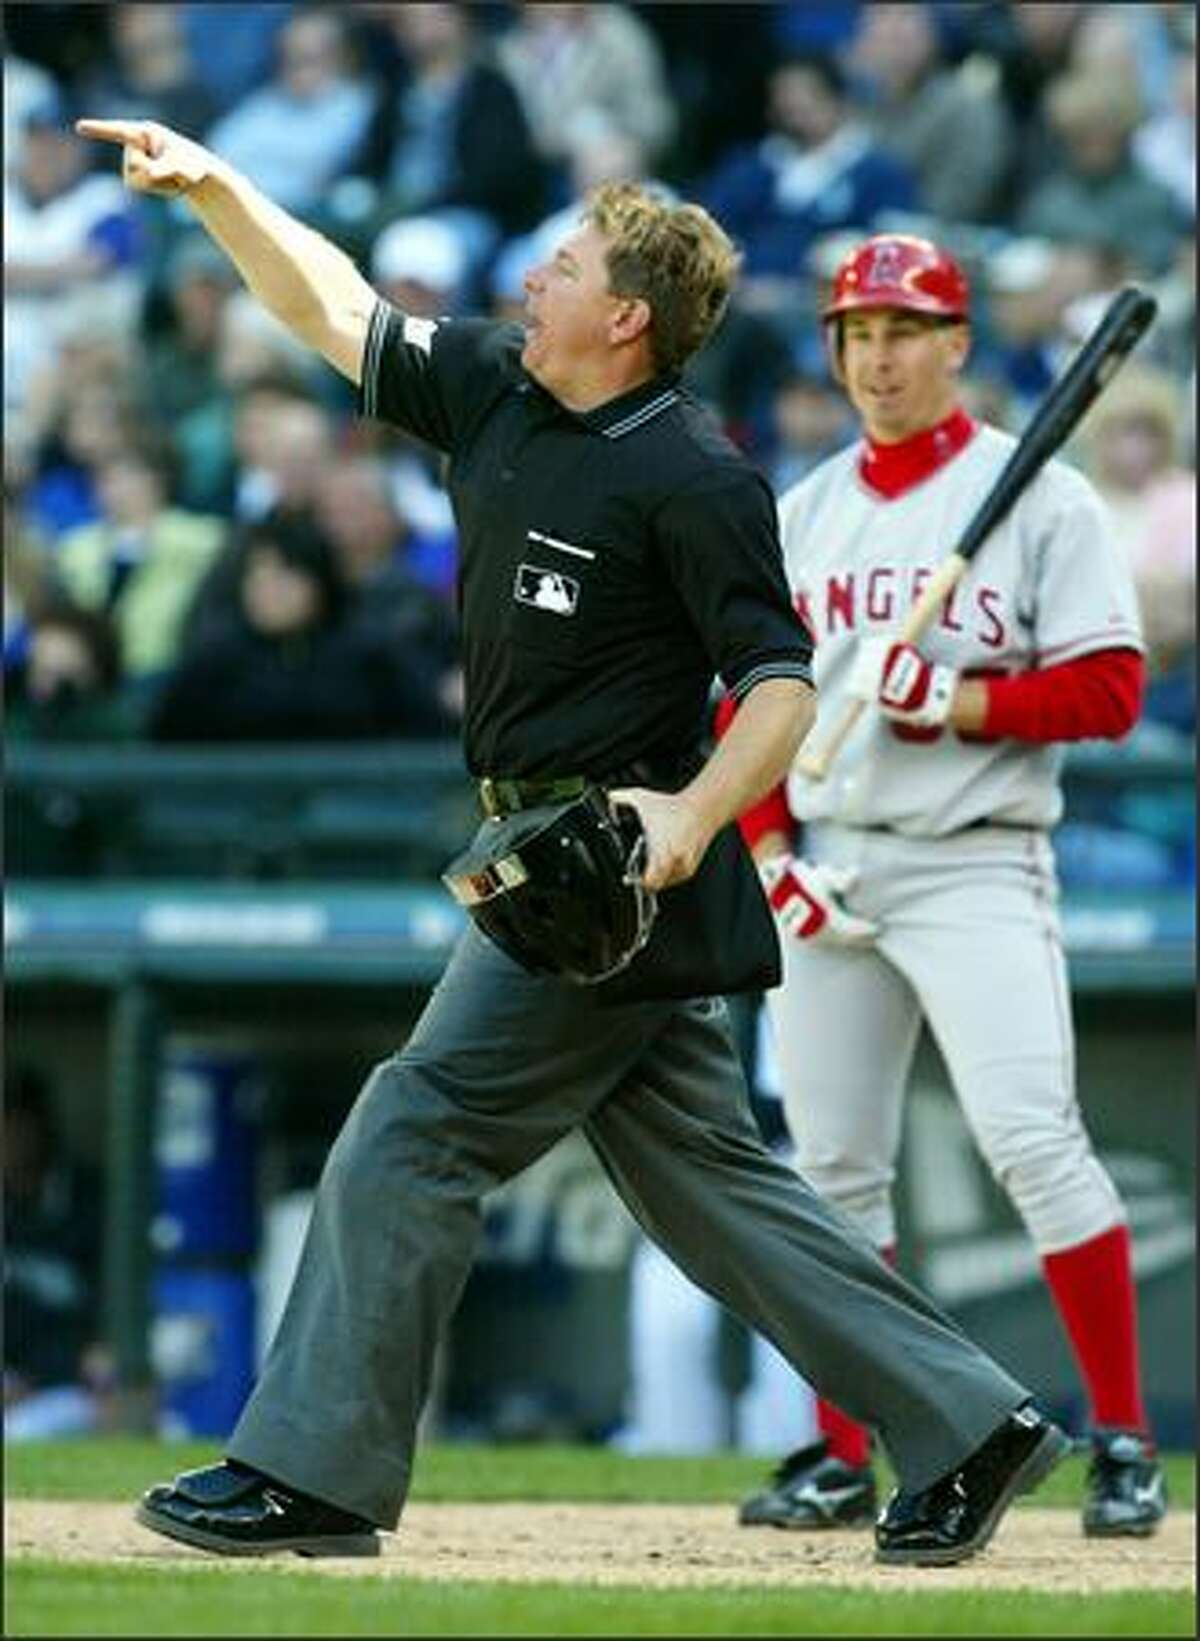 Mariners reliever Shigetoshi Hasegawa disagreed with umpire Greg Gibson's balk call, which gave the Angels a 3-1 lead in the ninth inning.